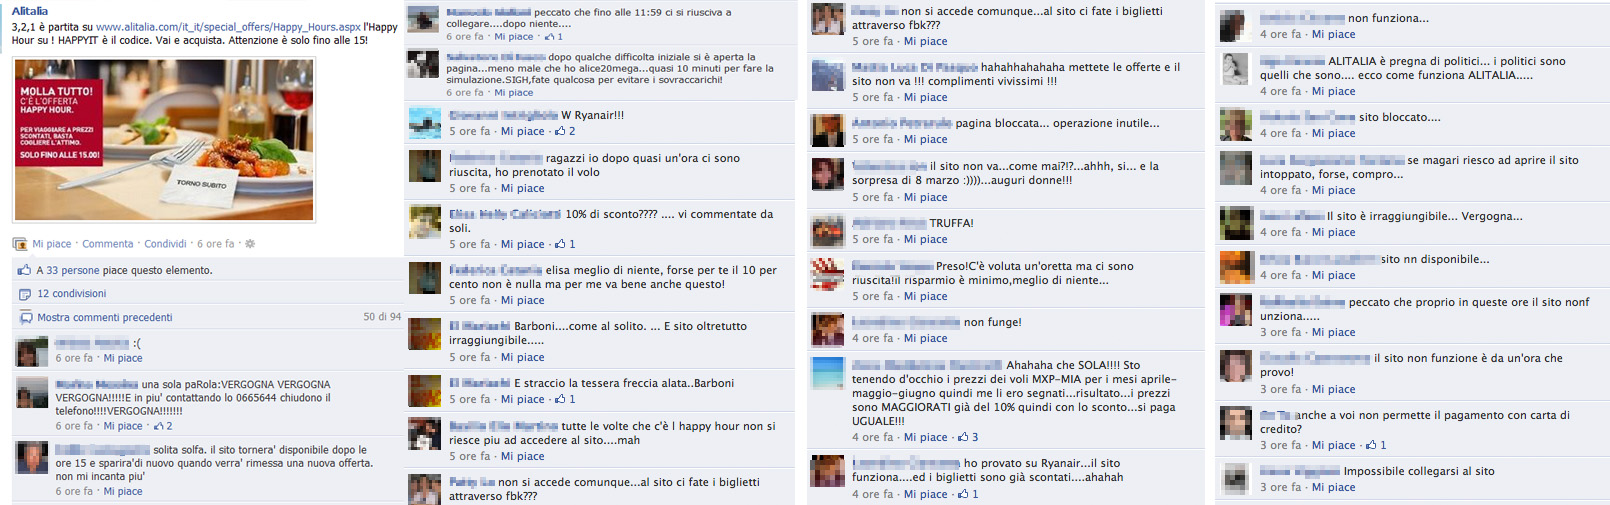 Commenti post Alitalia